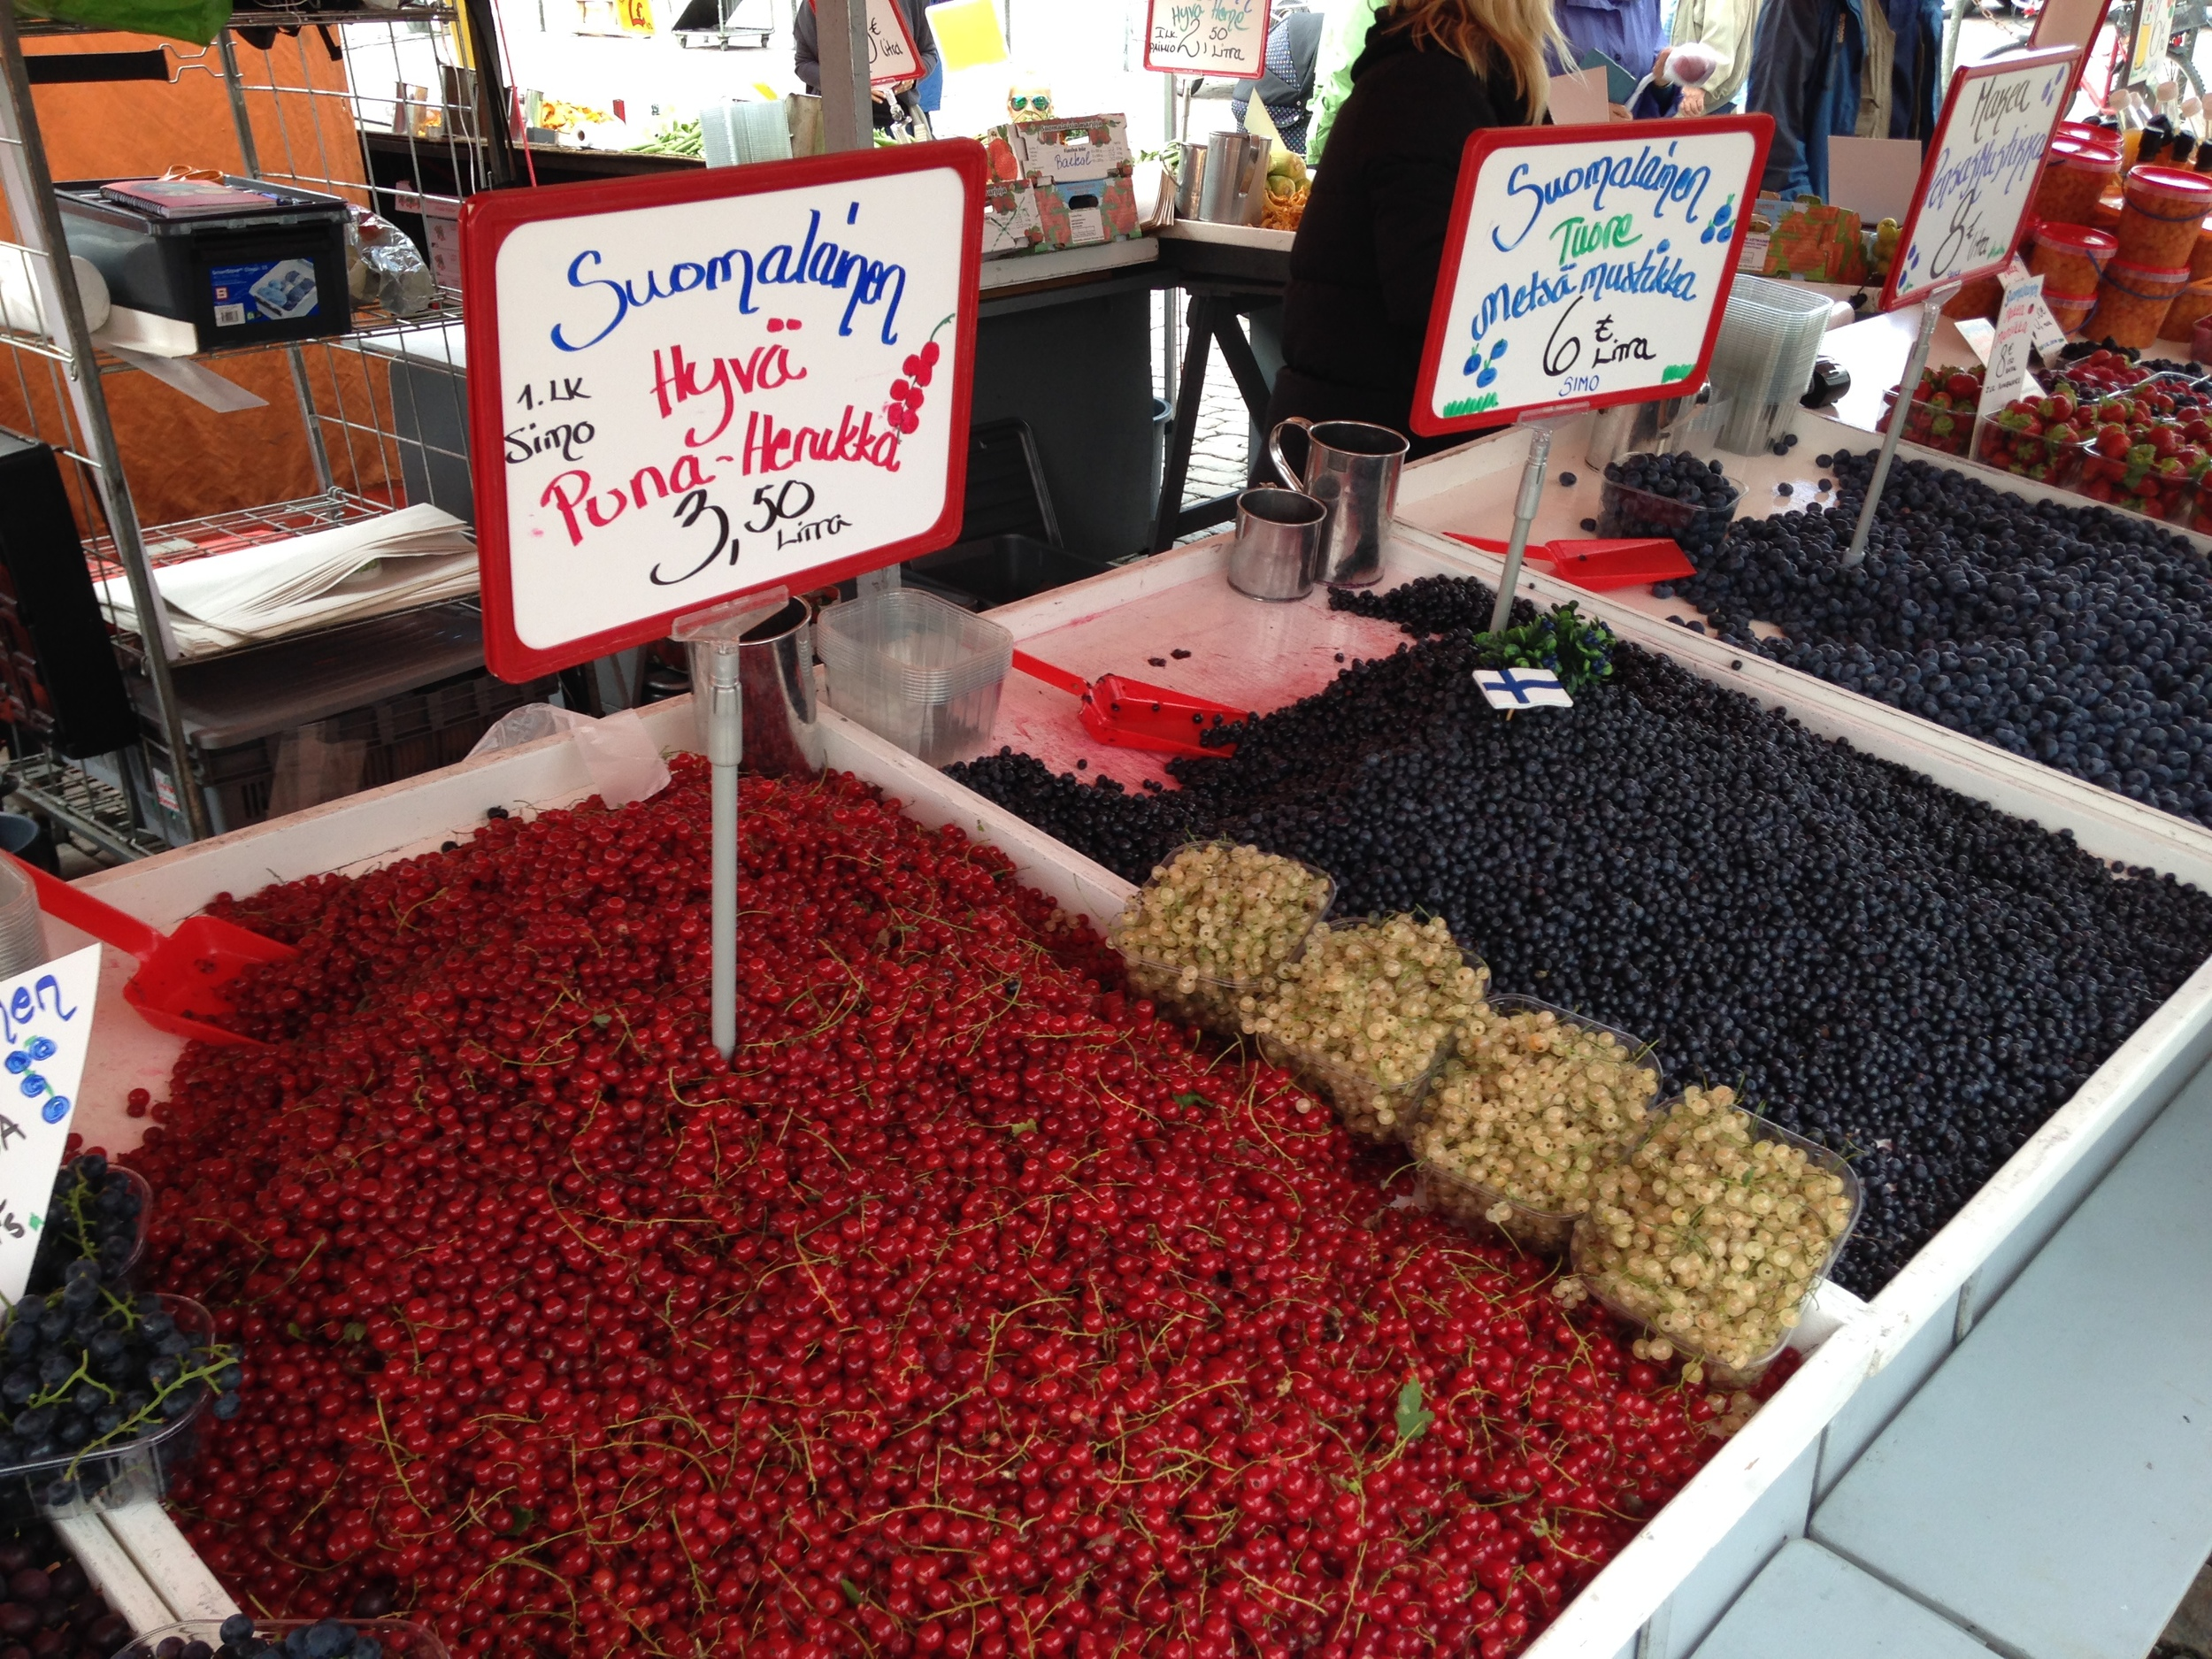 Berries at the outdoor public market